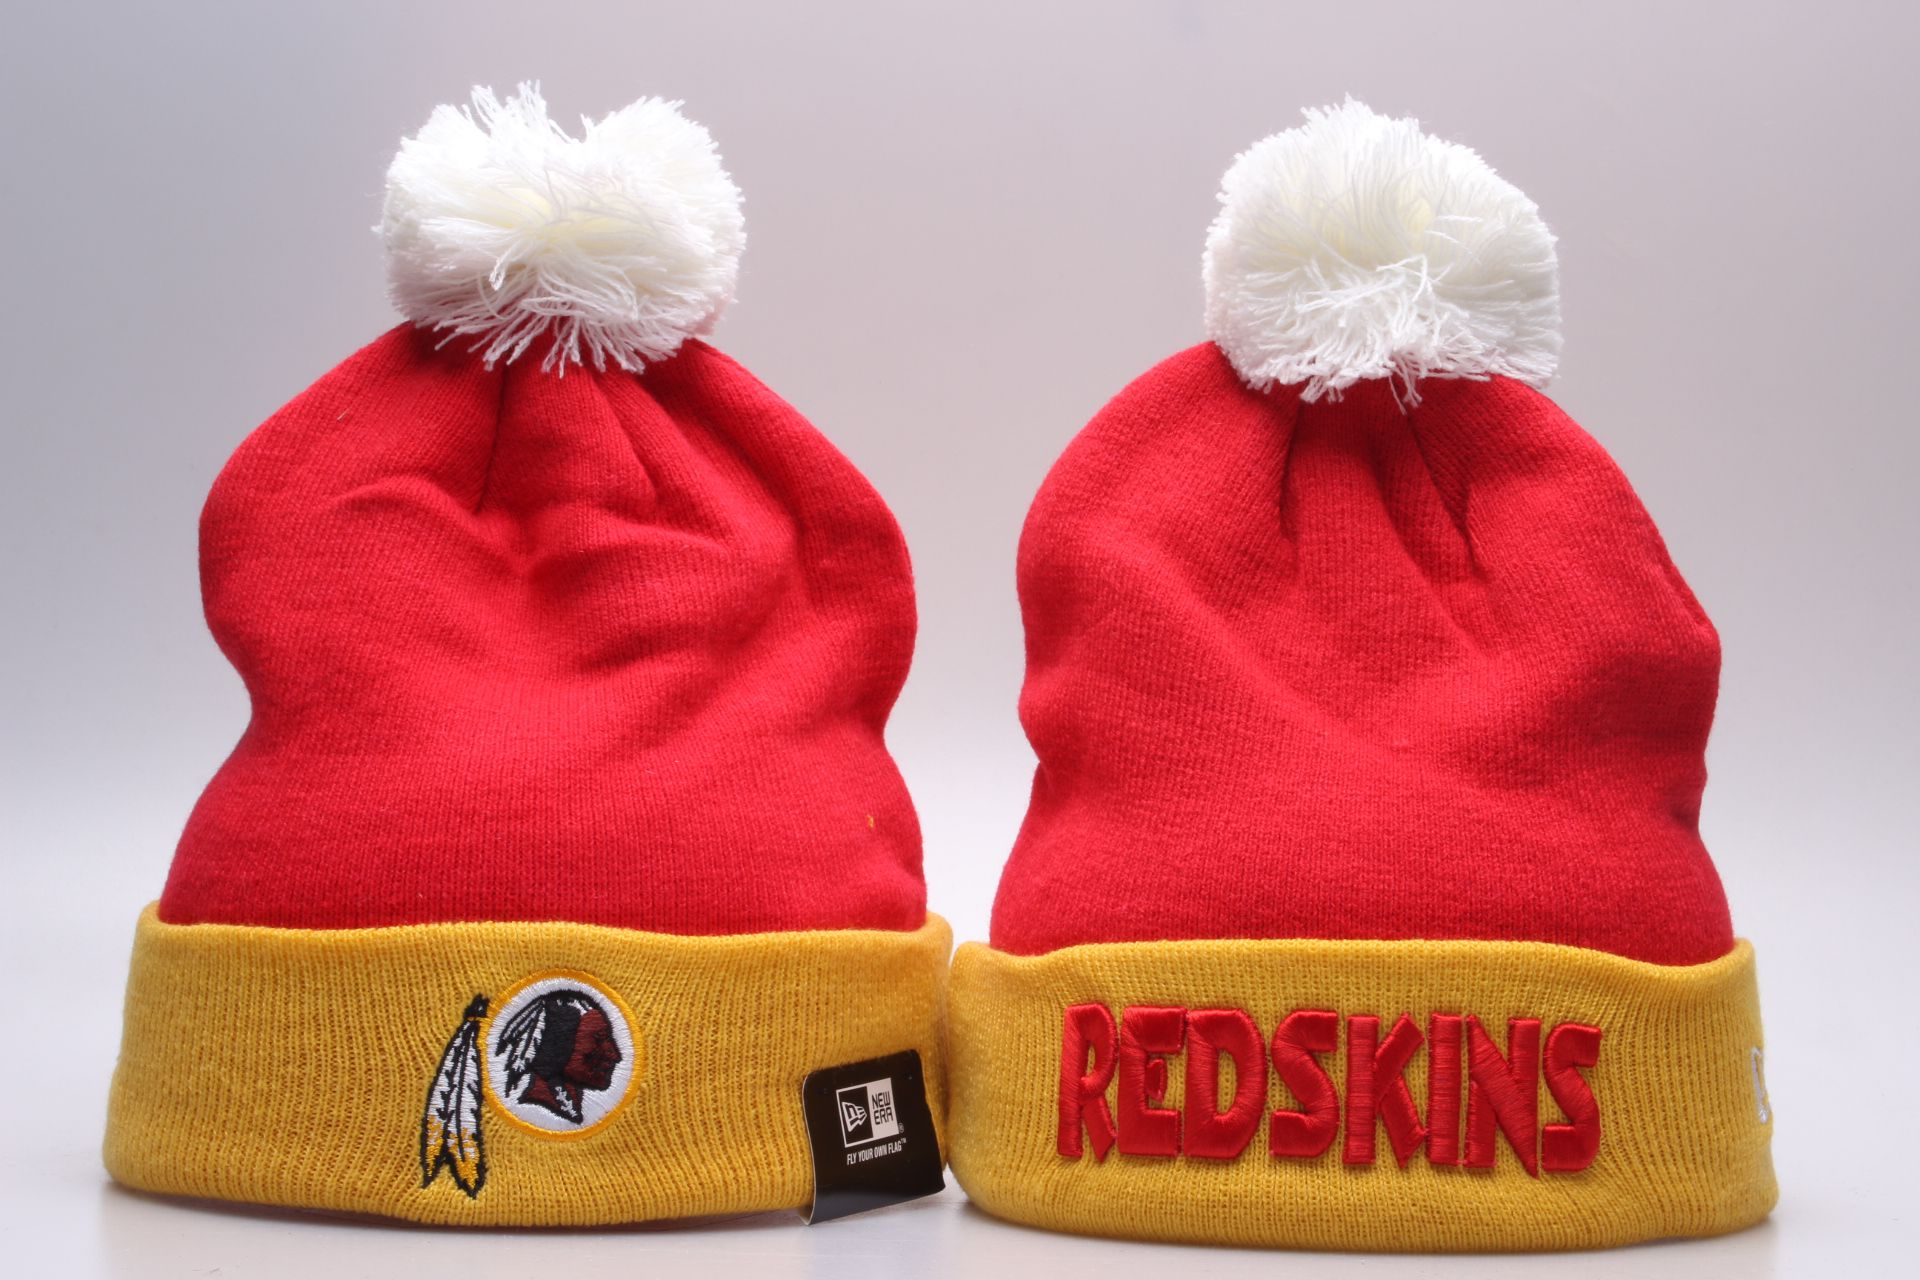 NFL Washington Red Skins Beanie hot hat1